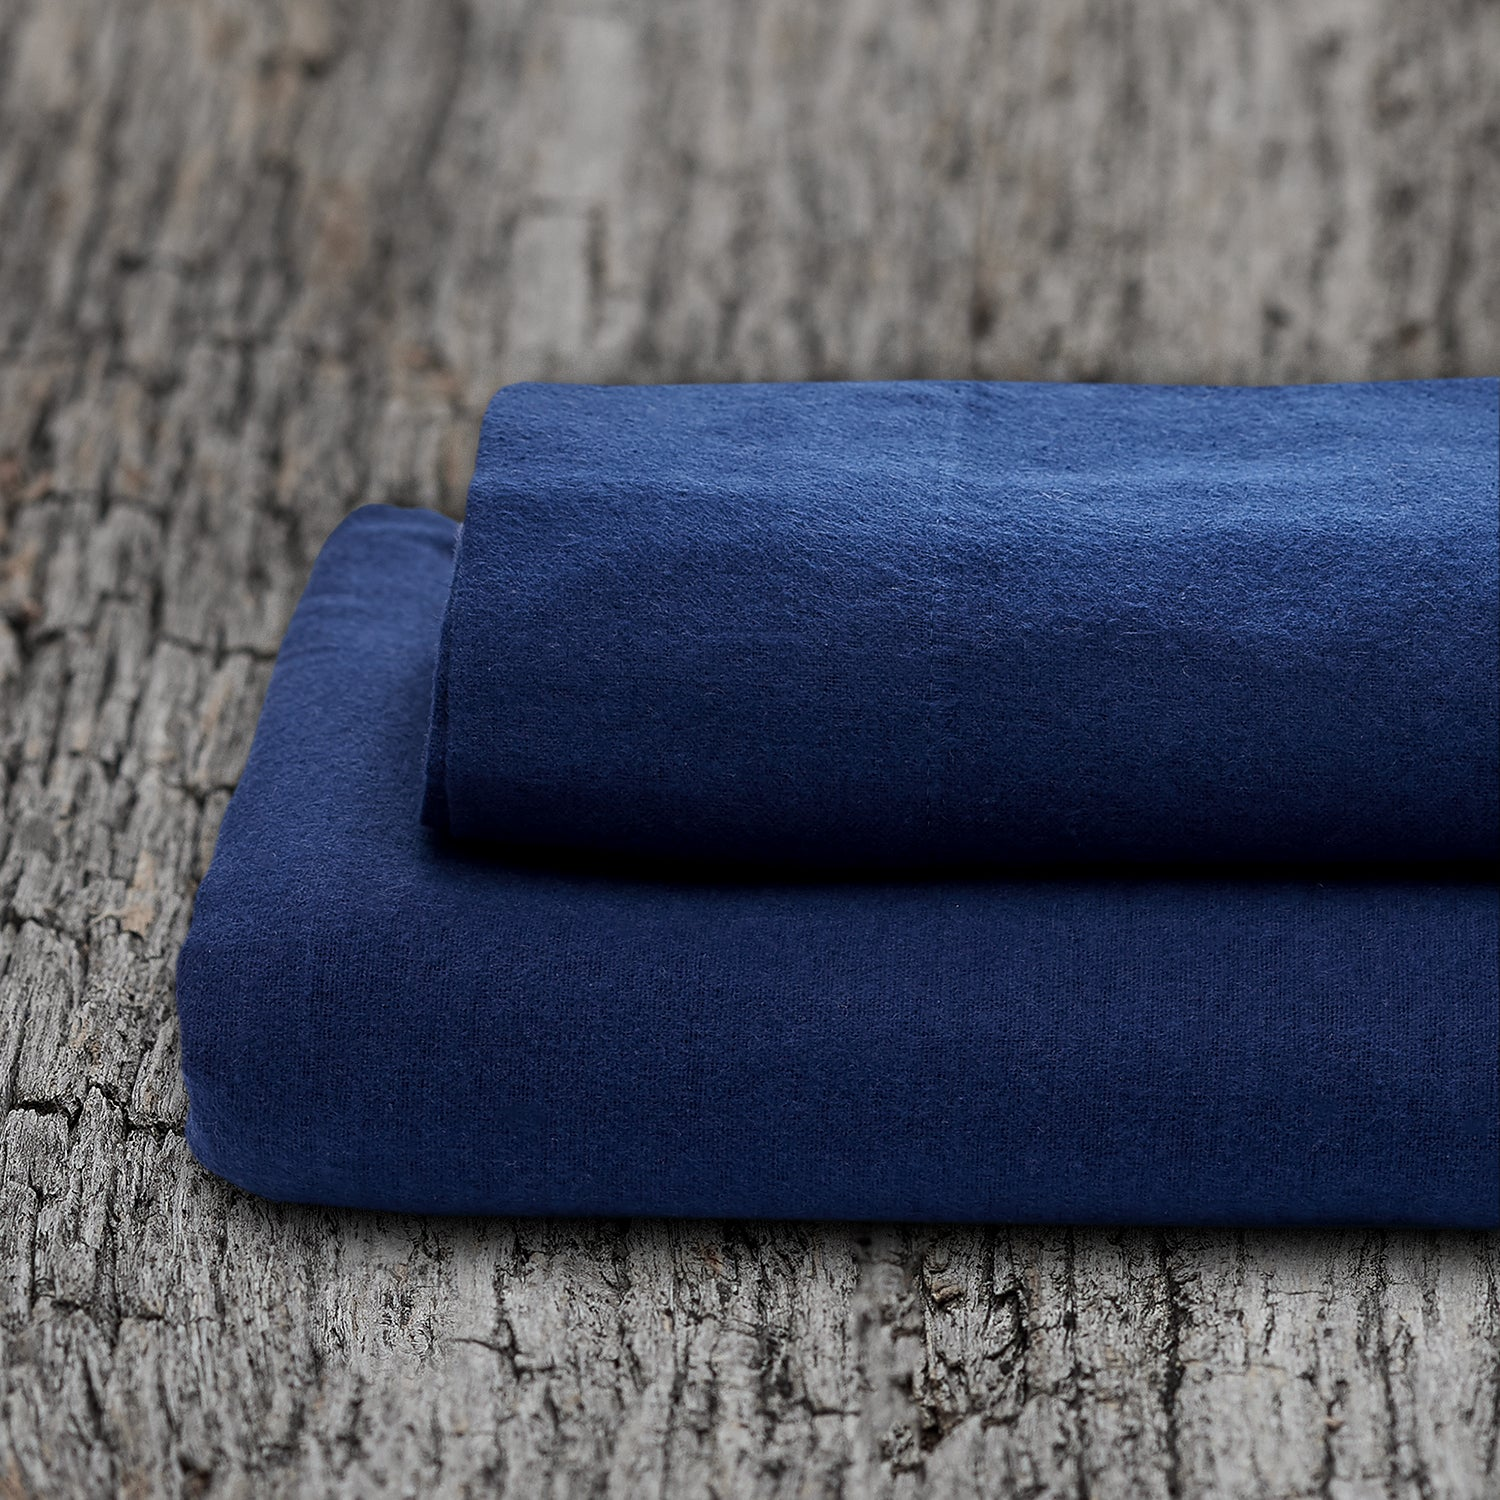 Flannel Sheets | Fleet Sheets - Navy Rack Sheets for Navy Racks and Submarine Racks